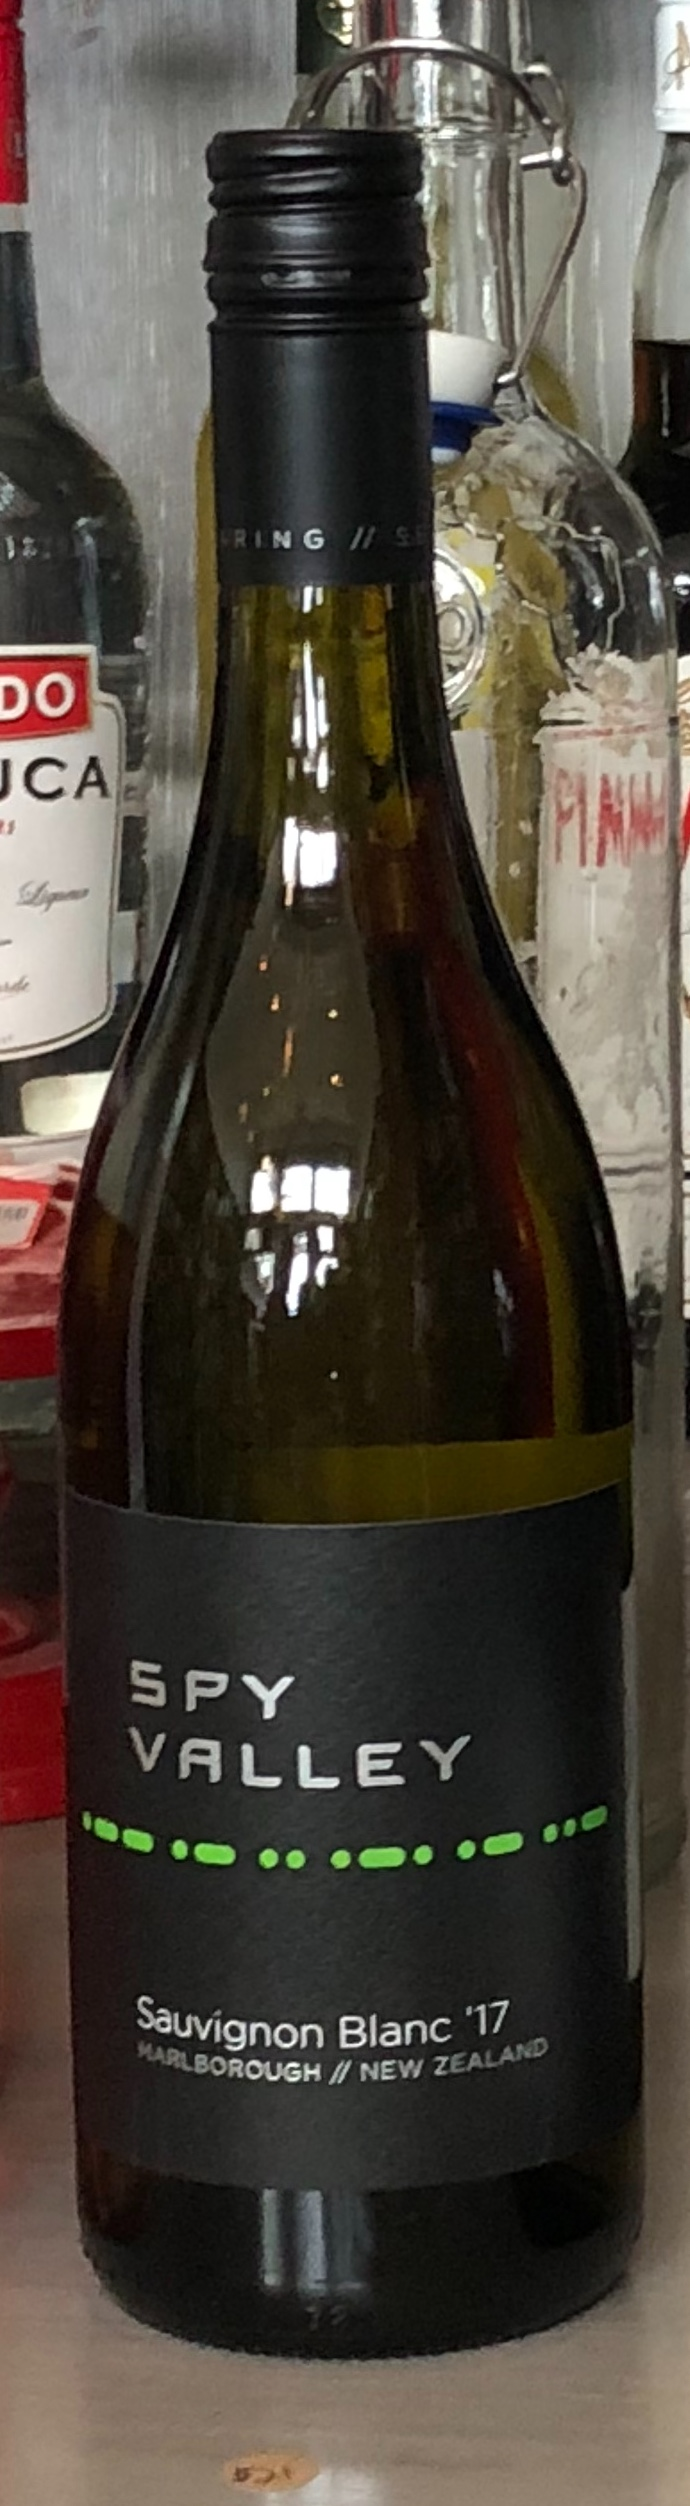 Spy Valley Sauvignon Blanc - Classic Marlborough flavors (think Kim Crawford). Winery got its name because it is located near the Waihopai Station, a controversial satellite communications monitoring facility allegedly used by the NSA to intercept communications from that end of the earth. $21